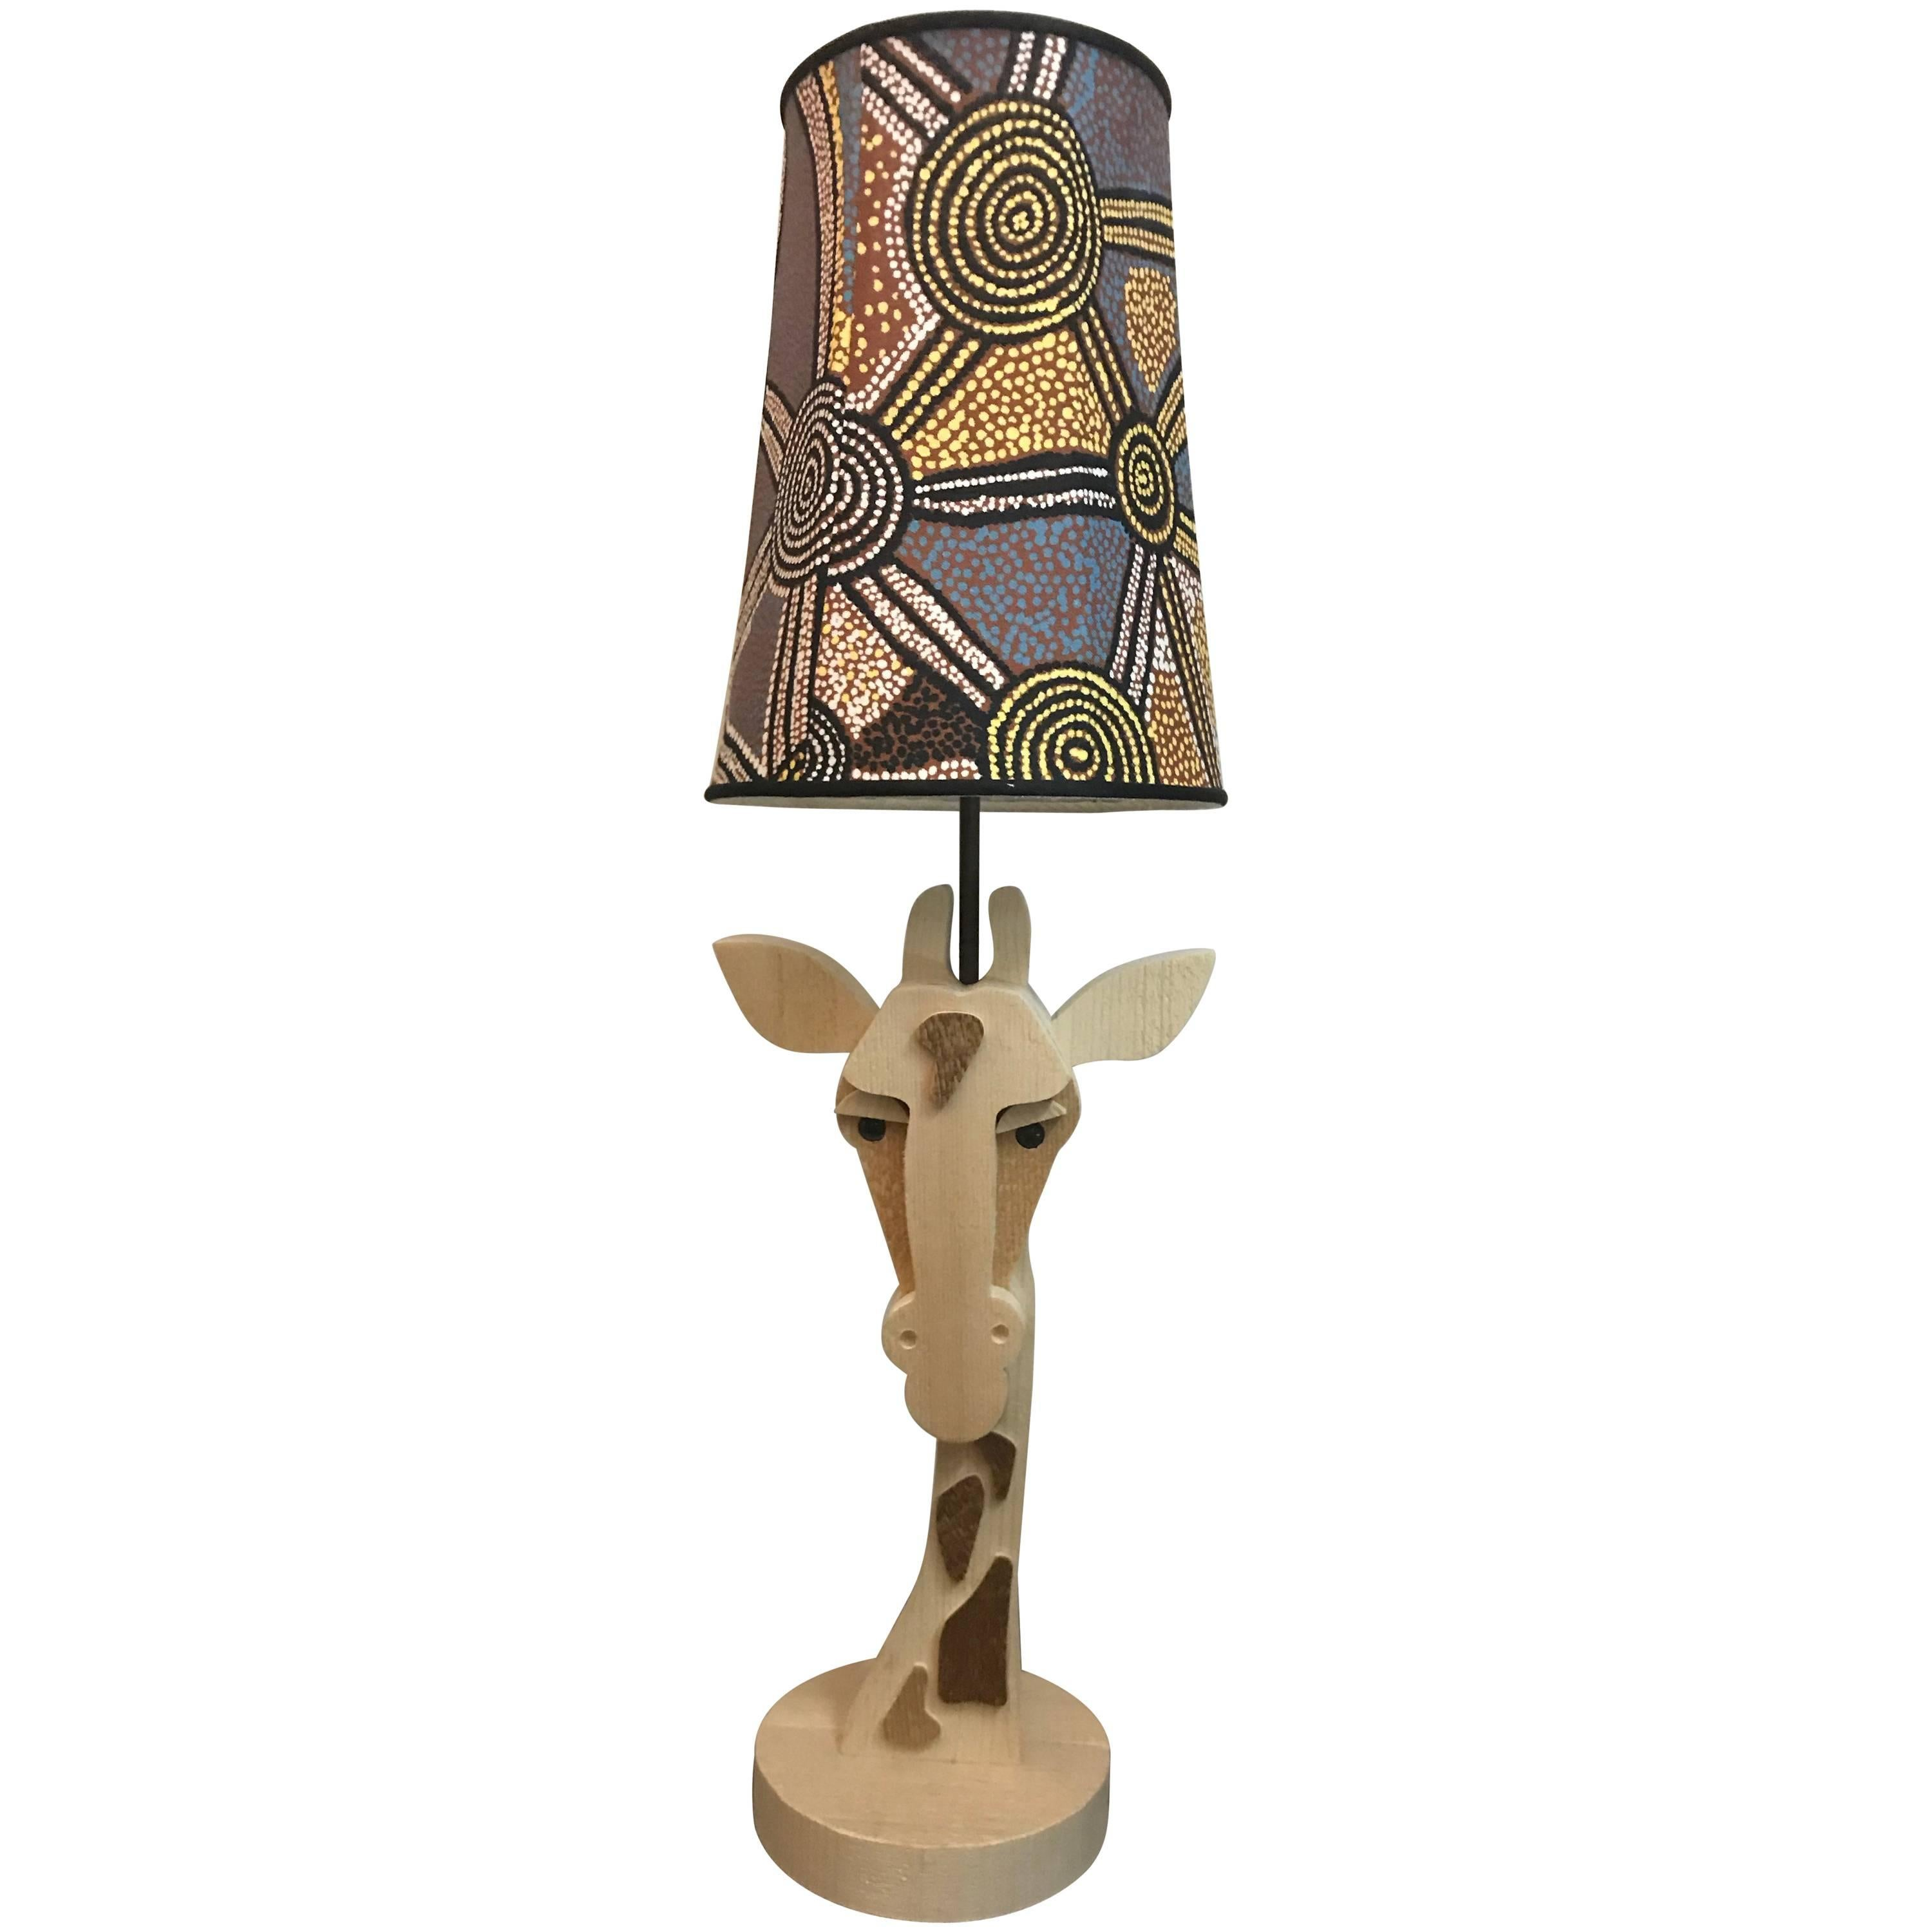 Merveilleux Giraffe Table Lamp, Natural Wood For Sale